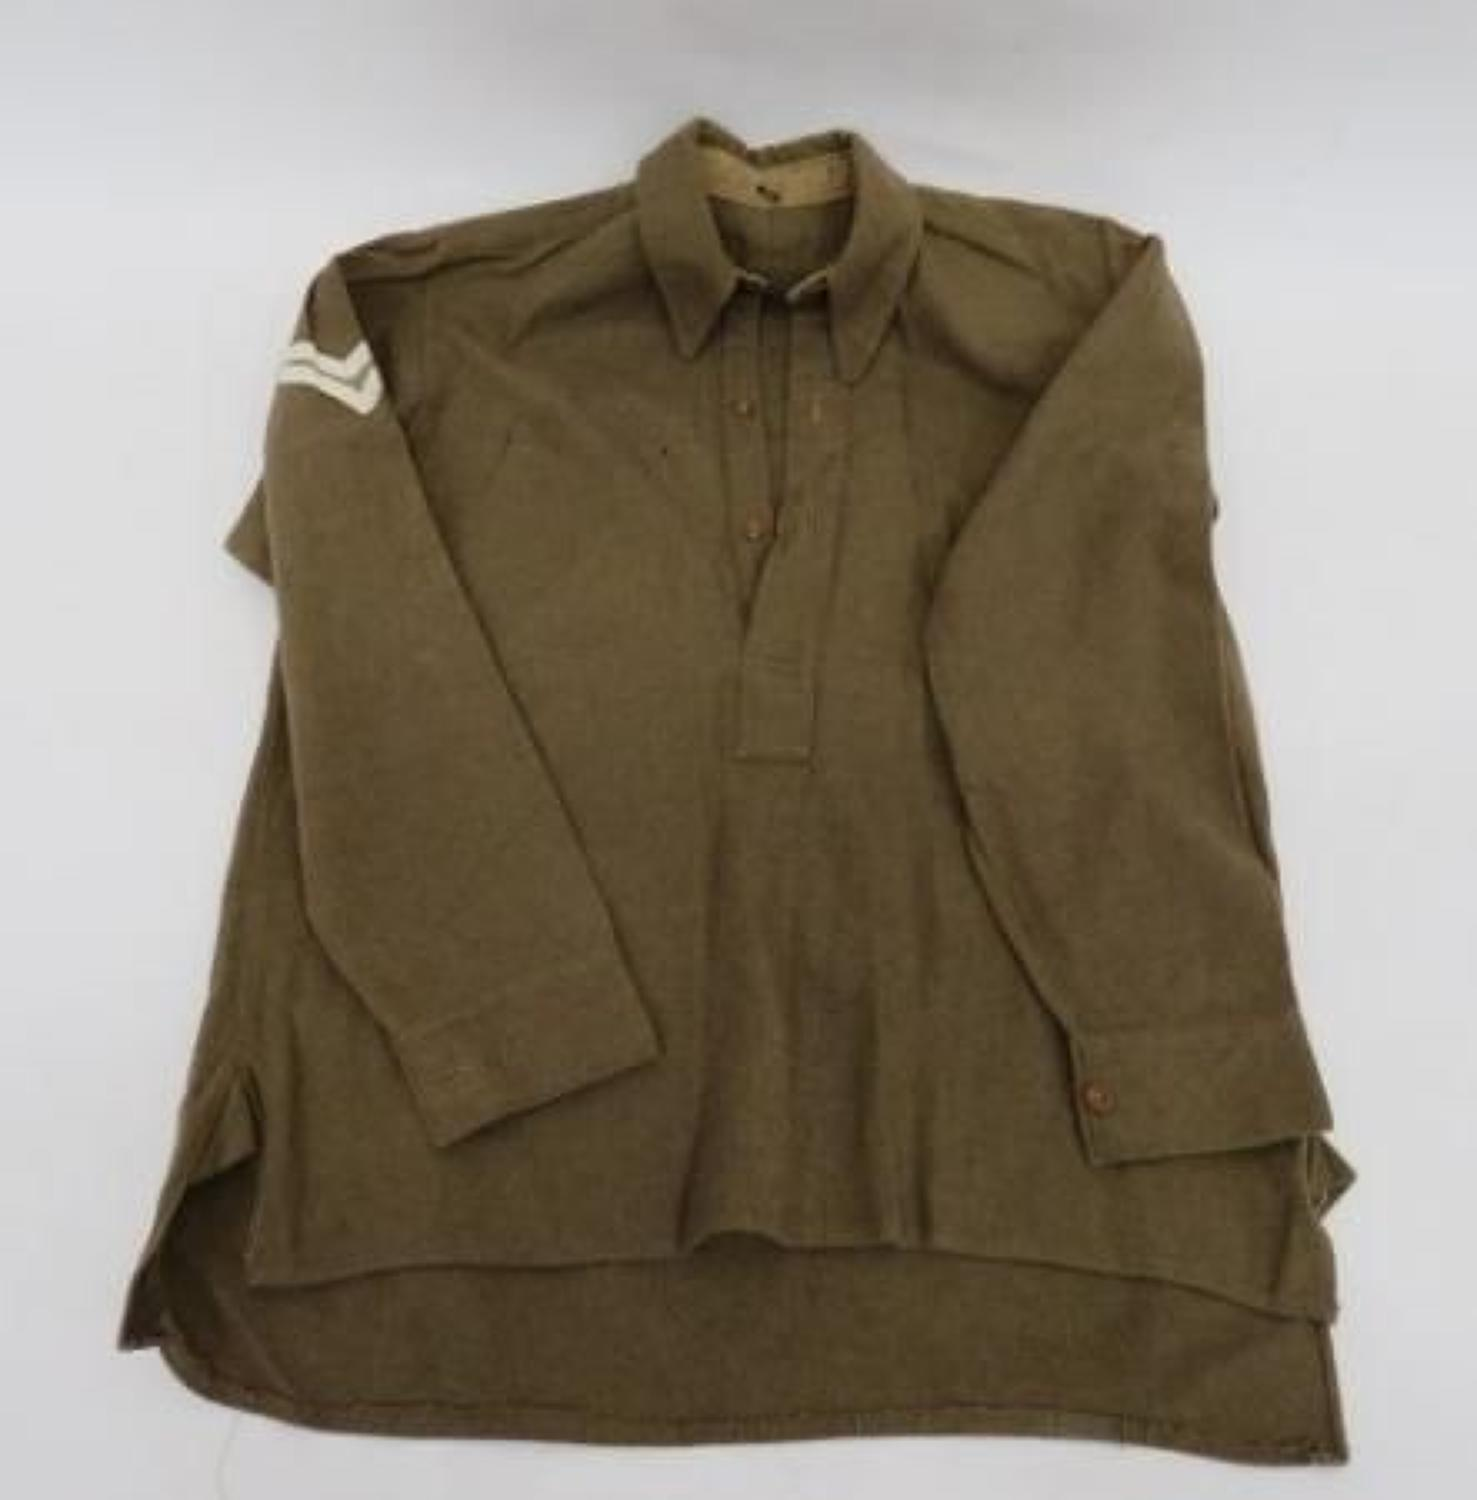 WW 2 Issue Army Other Ranks Half Front Collared Shirt